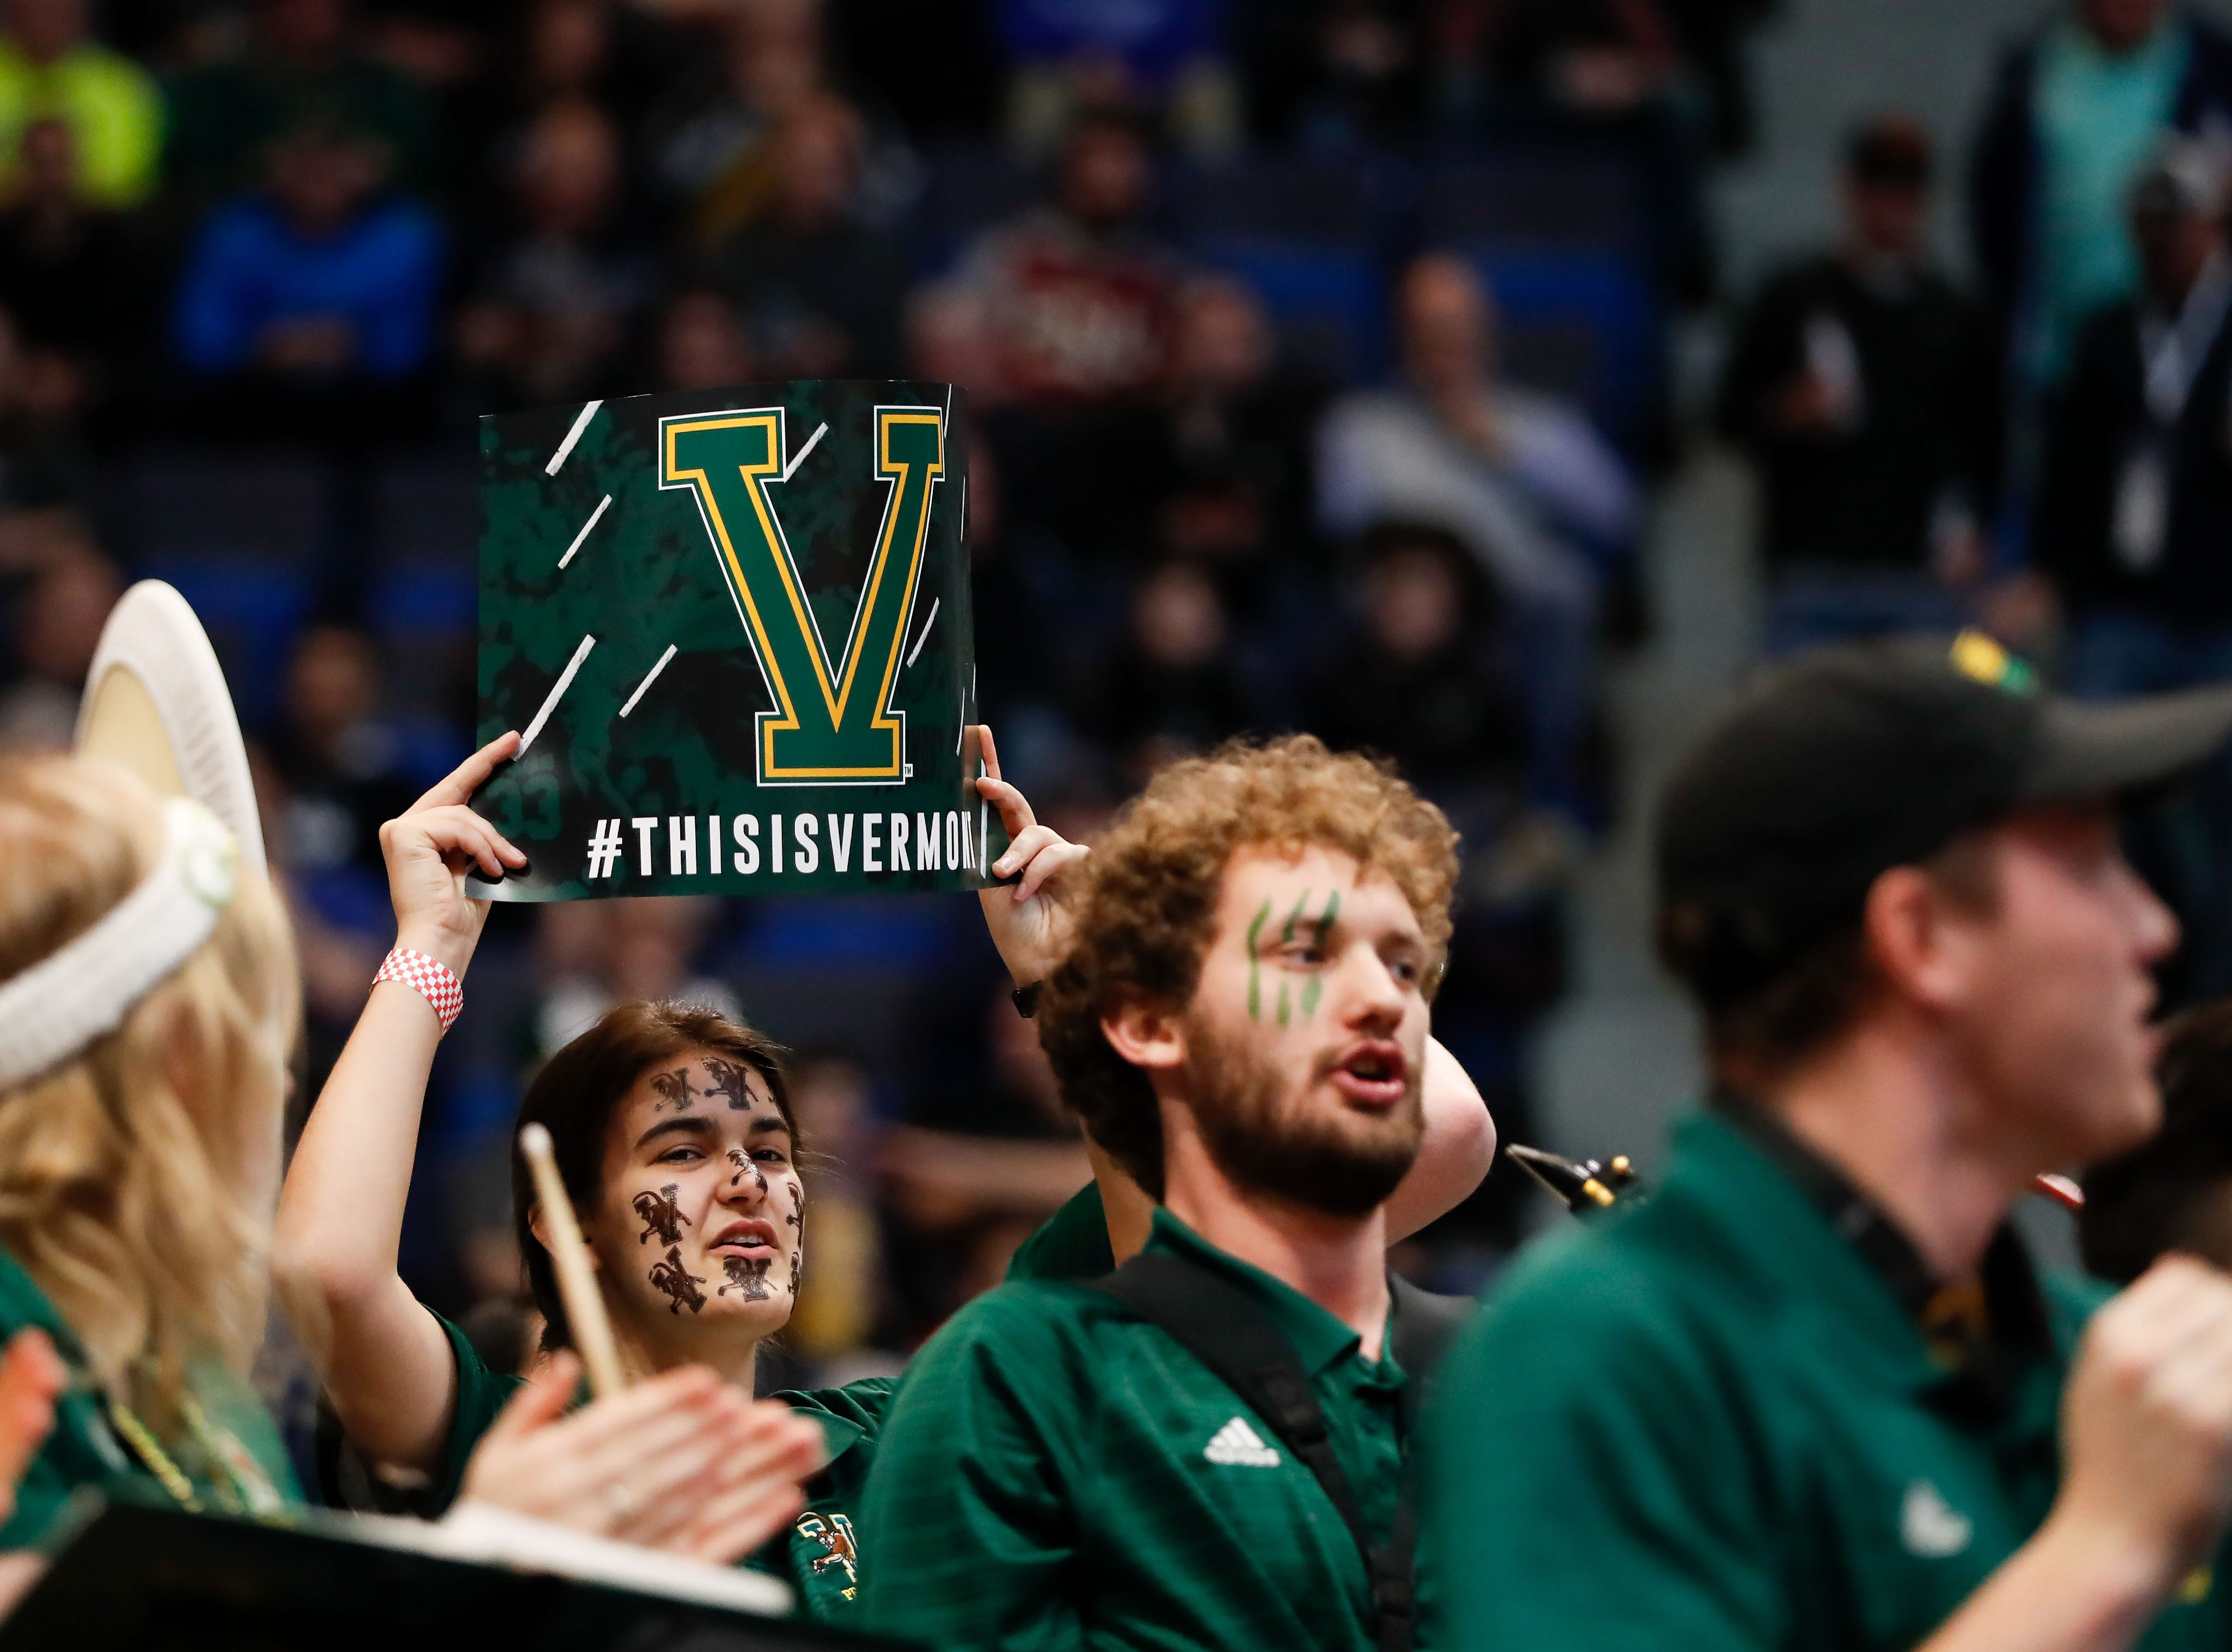 Mar 21, 2019; Hartford, CT, USA; A member of the Vermont Catamounts band hold up a sign during a game against the Florida State Seminoles in the first round of the 2019 NCAA Tournament at XL Center. Mandatory Credit: David Butler II-USA TODAY Sports